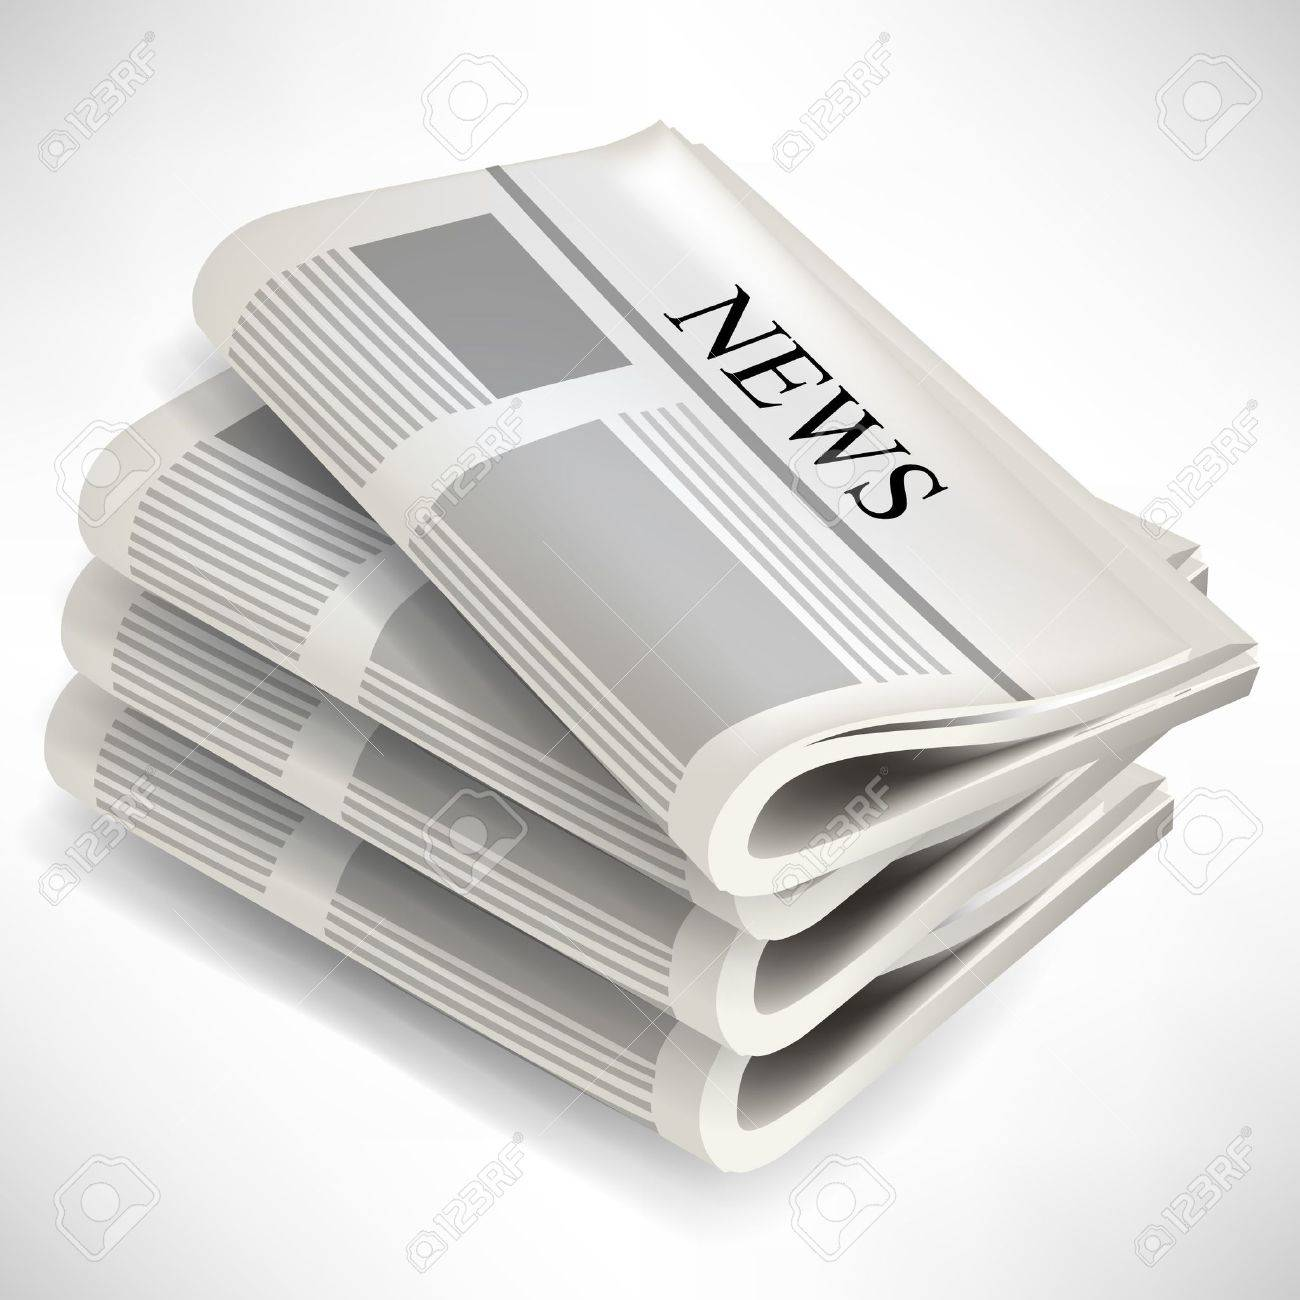 four newspaper pile isolated on white background royalty free